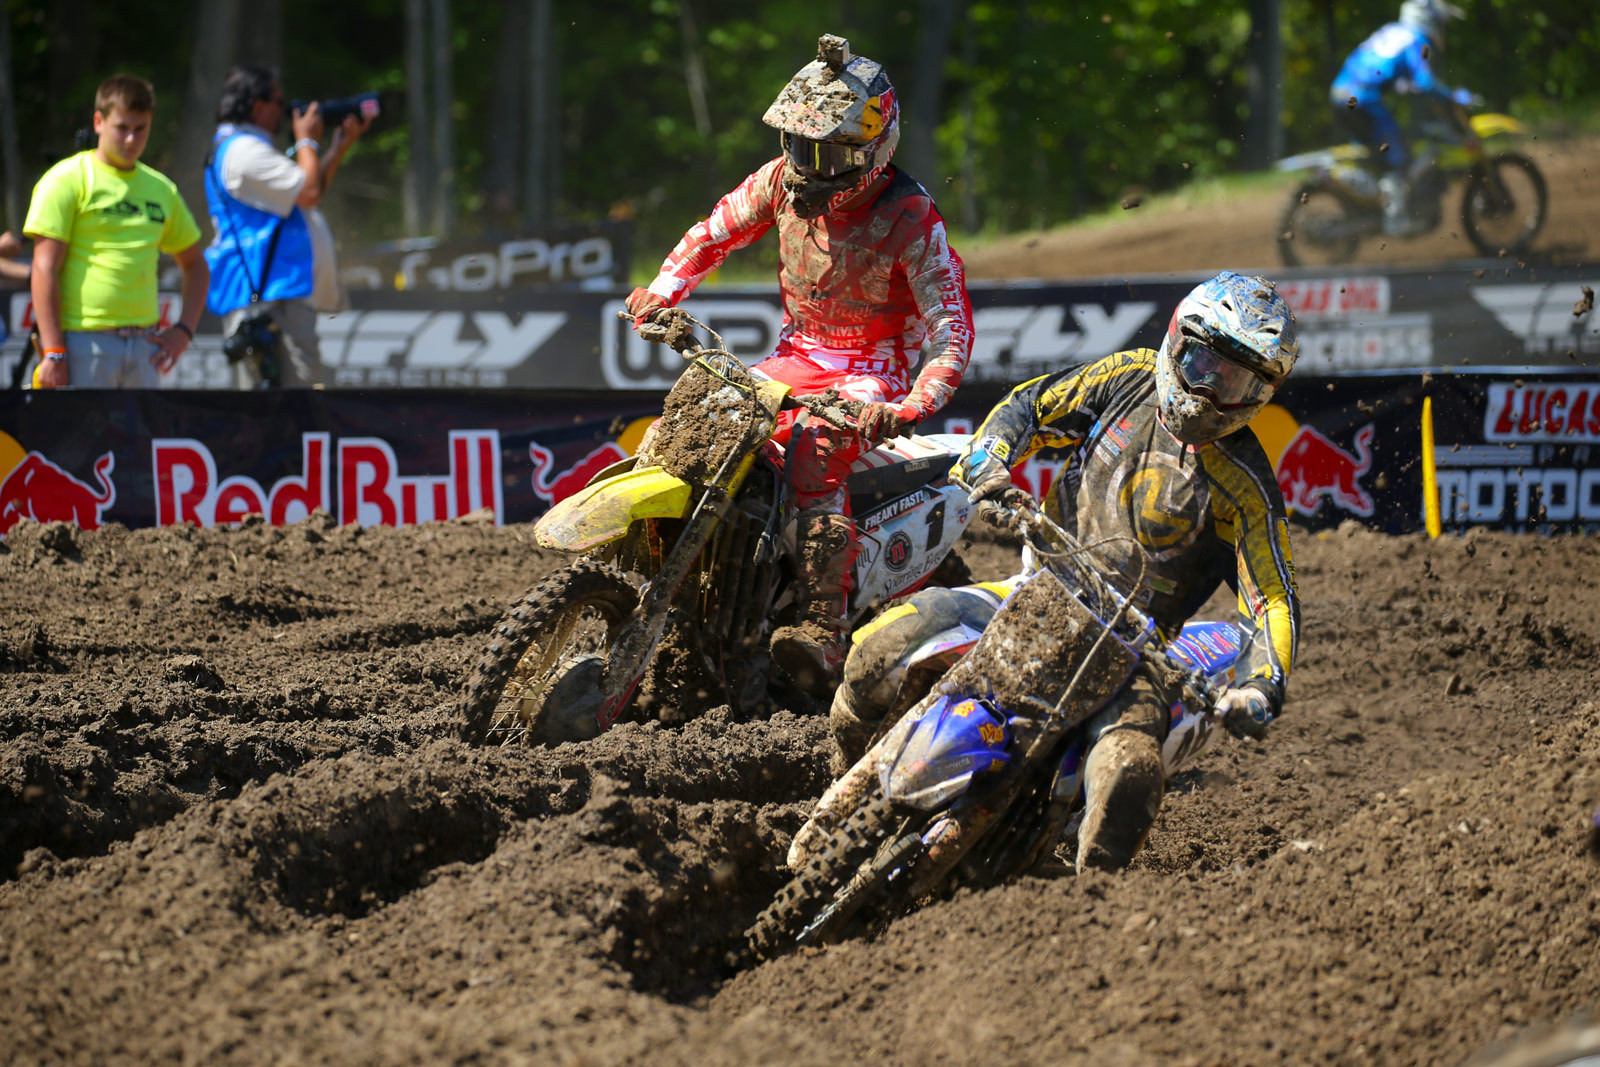 Phil Nicoletti and Ken Roczen - Photo Blast: Inronman MX - Motocross Pictures - Vital MX